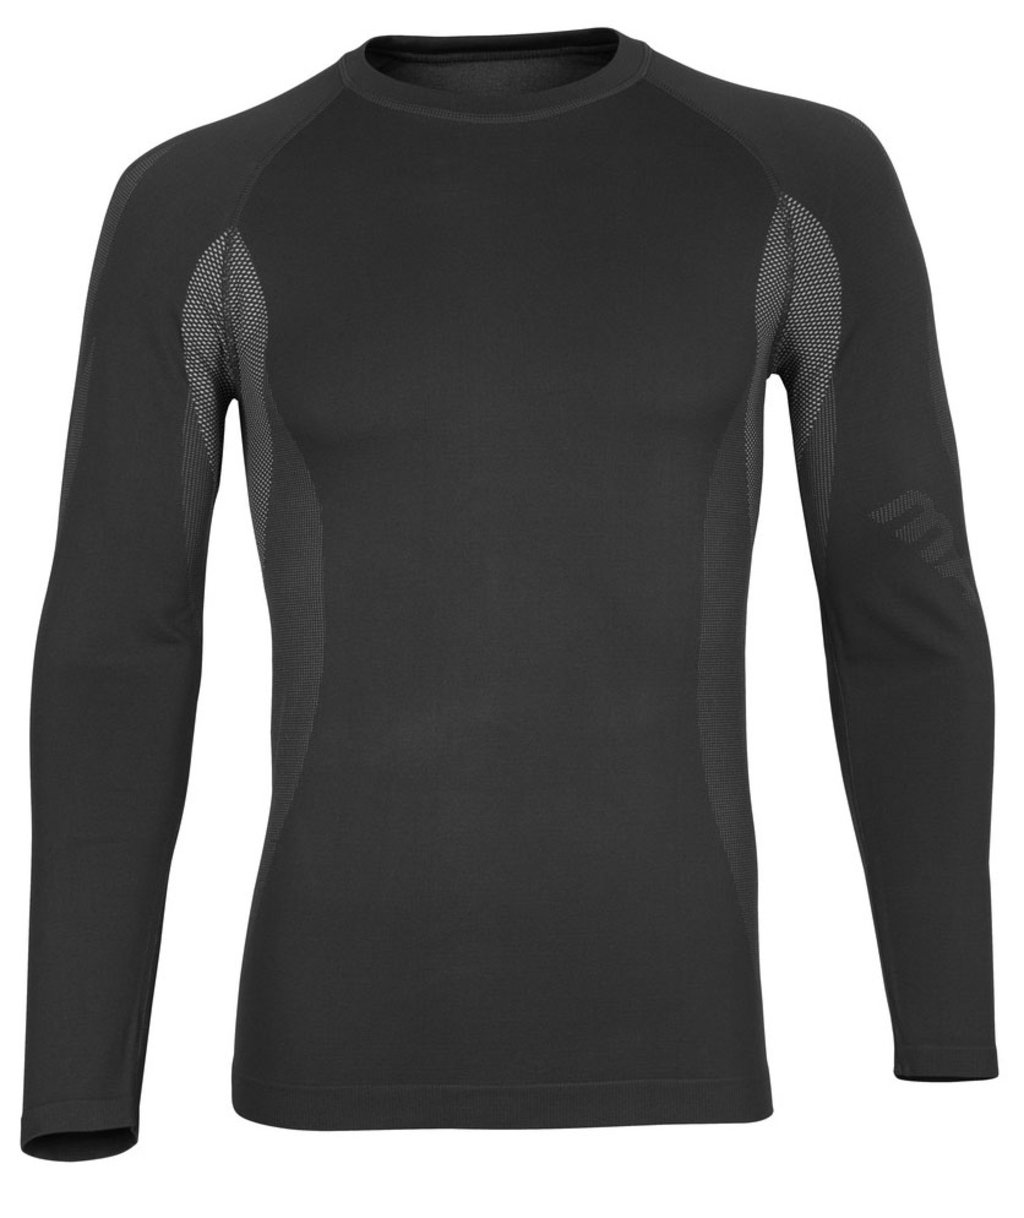 Mascot Crossover Parada long sleeved thermal underwear shirt, Dark Anthracite